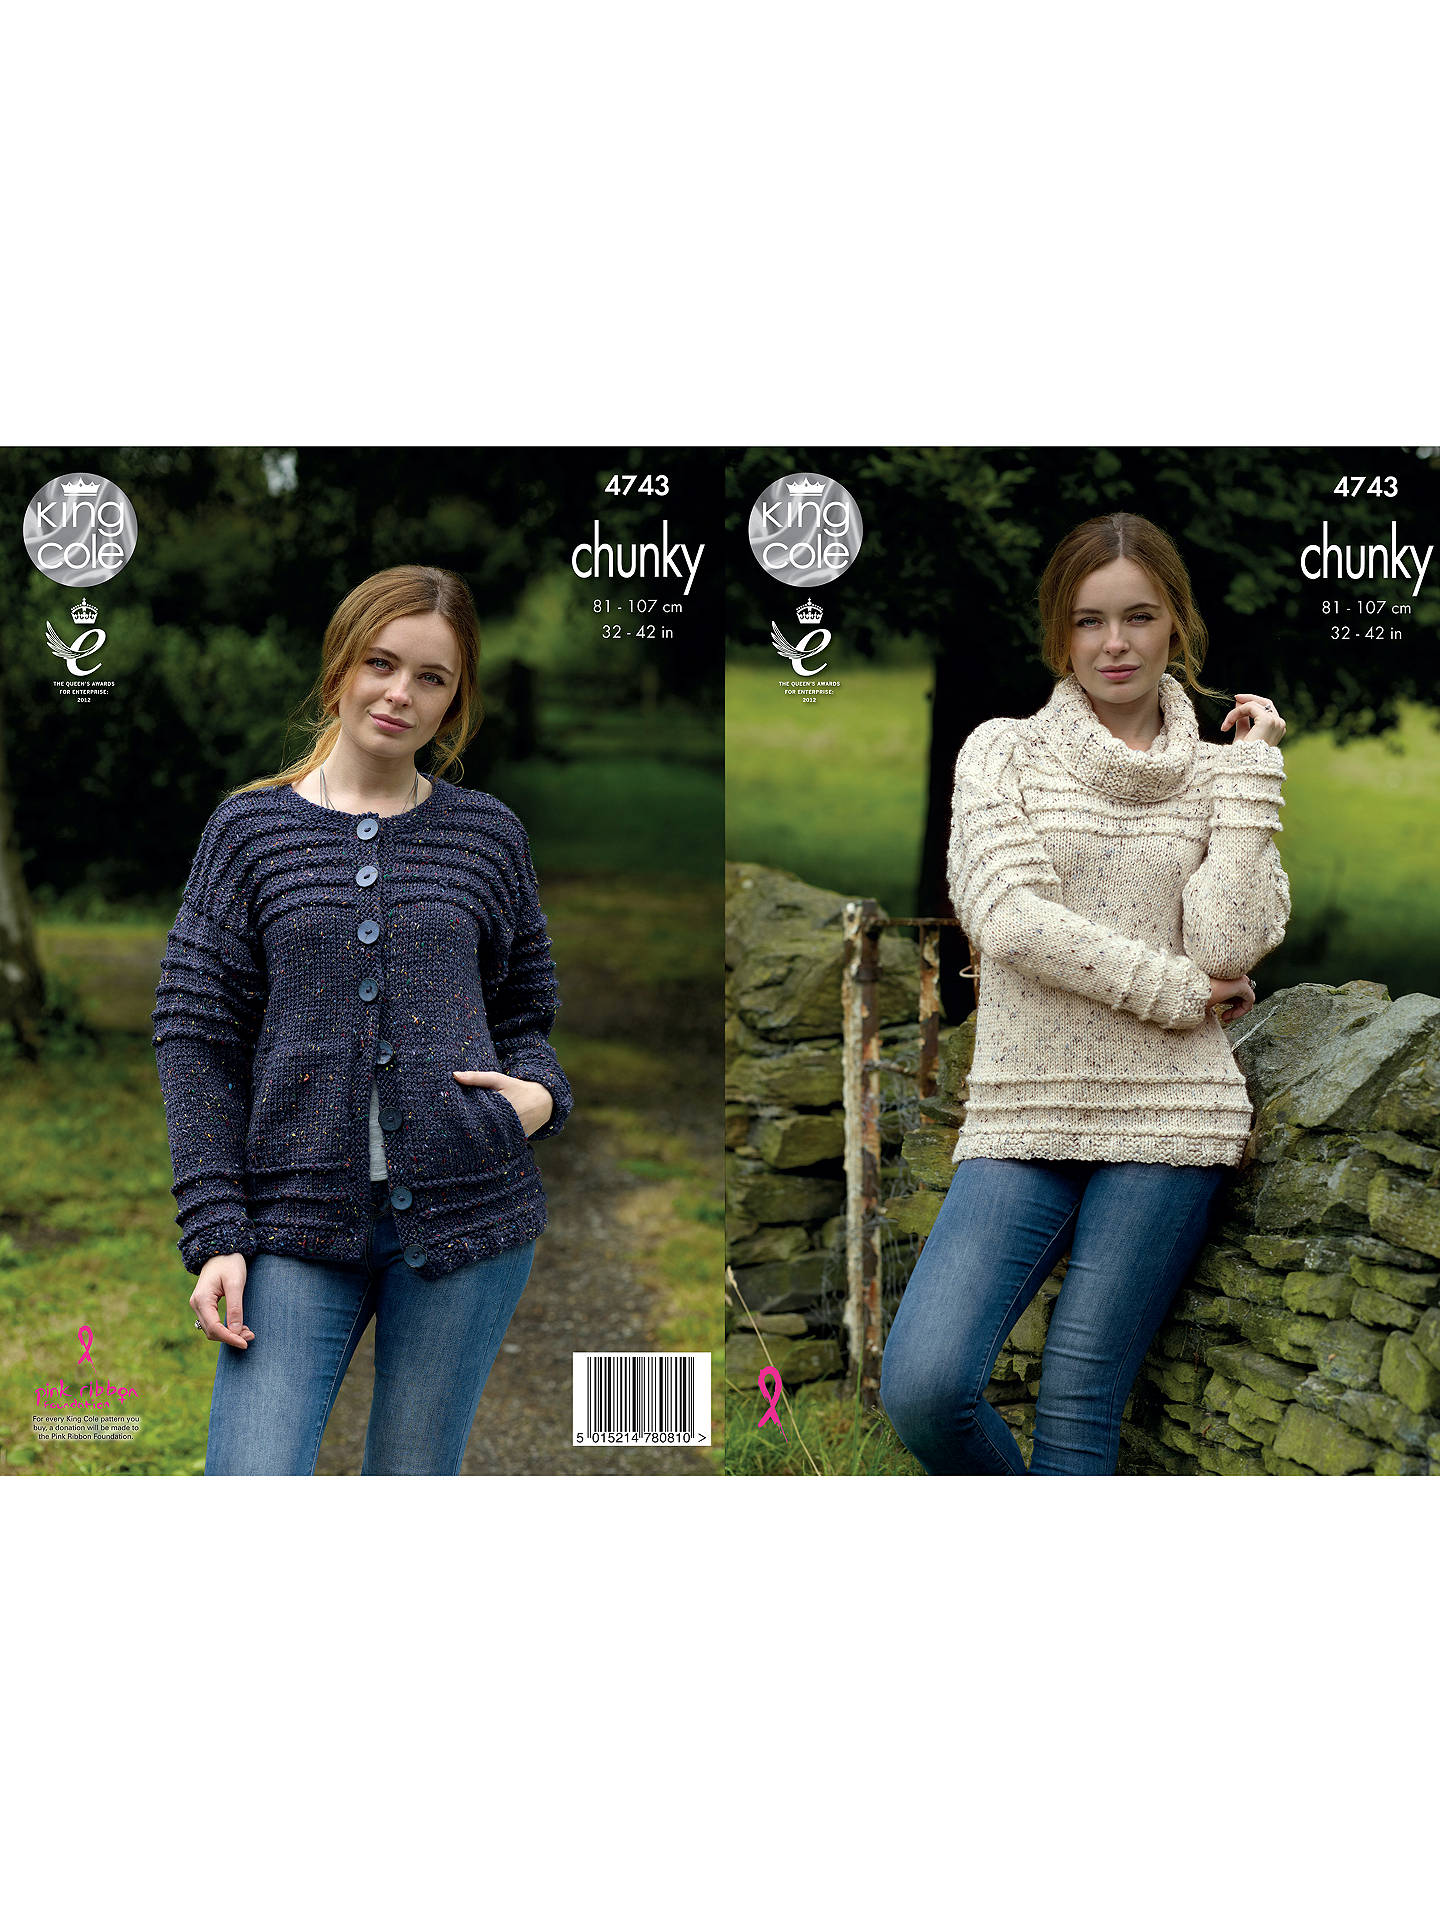 a8ce0c16852f King Cole Chunky Tweed Women s Jumper And Cardigan Knitting Pattern ...